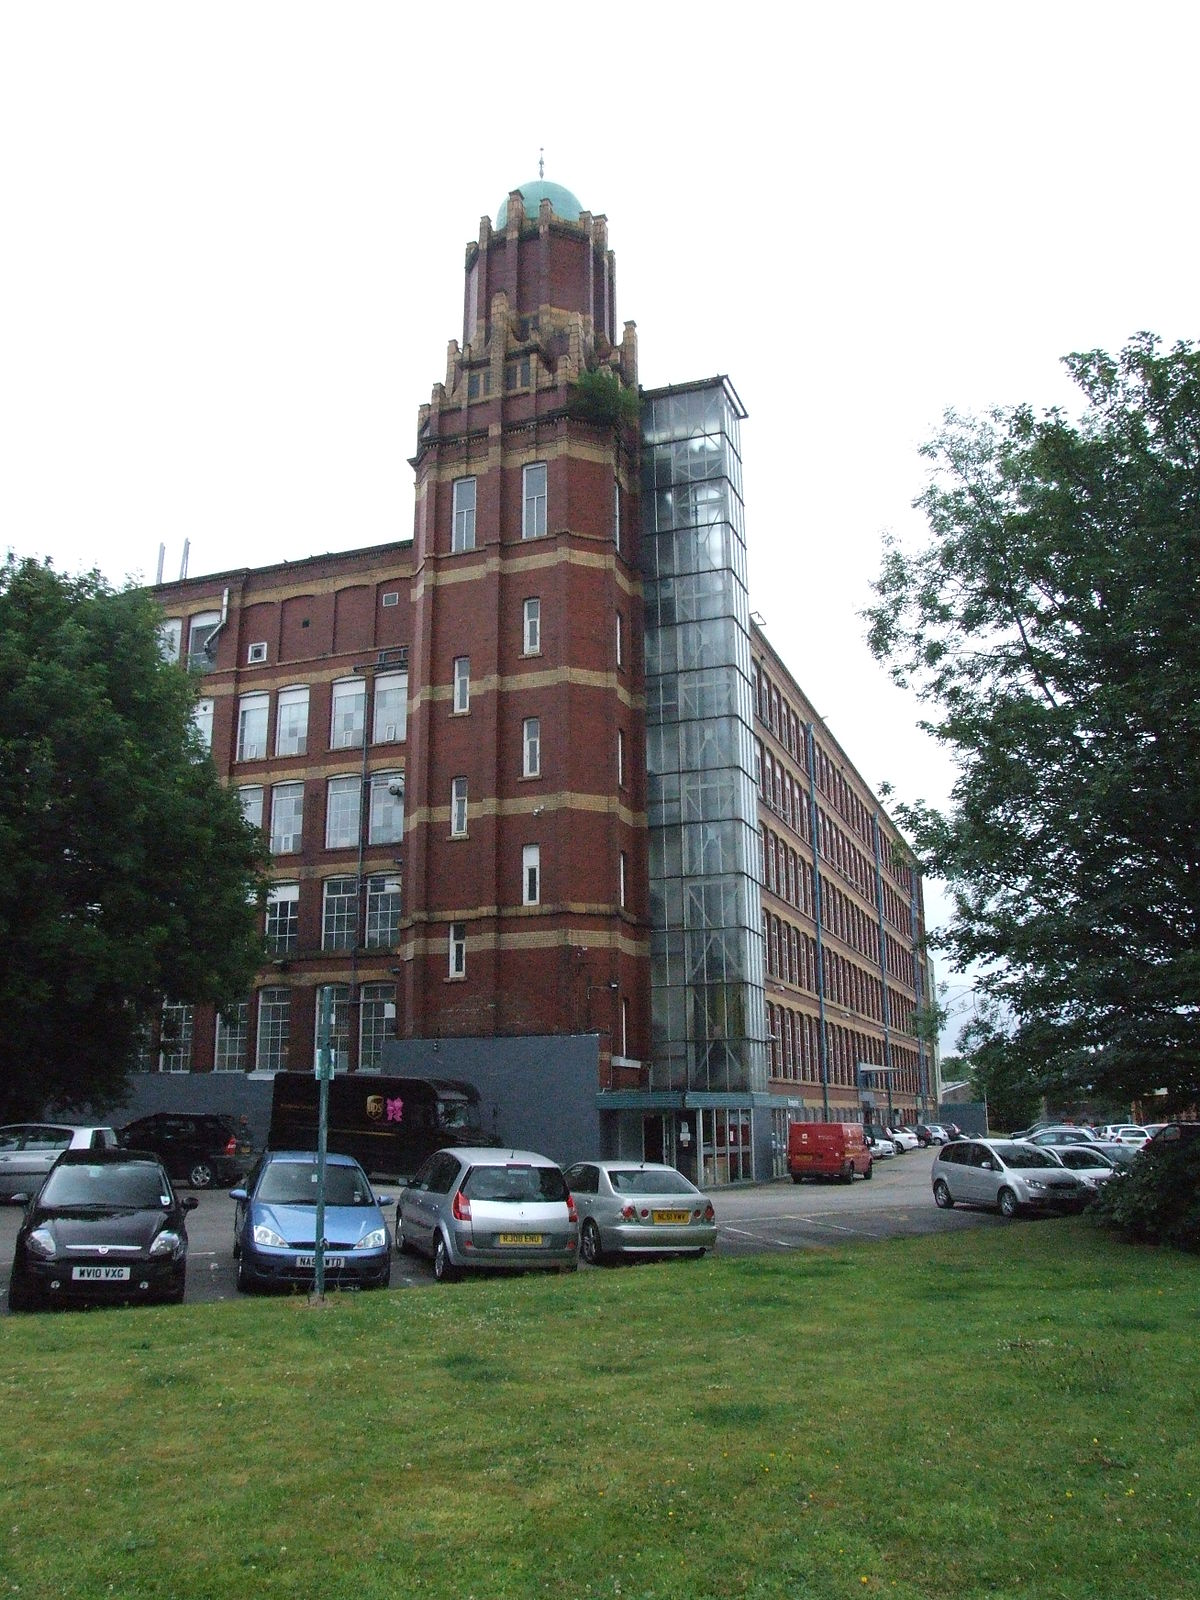 List Of Mills In Stockport Wikipedia